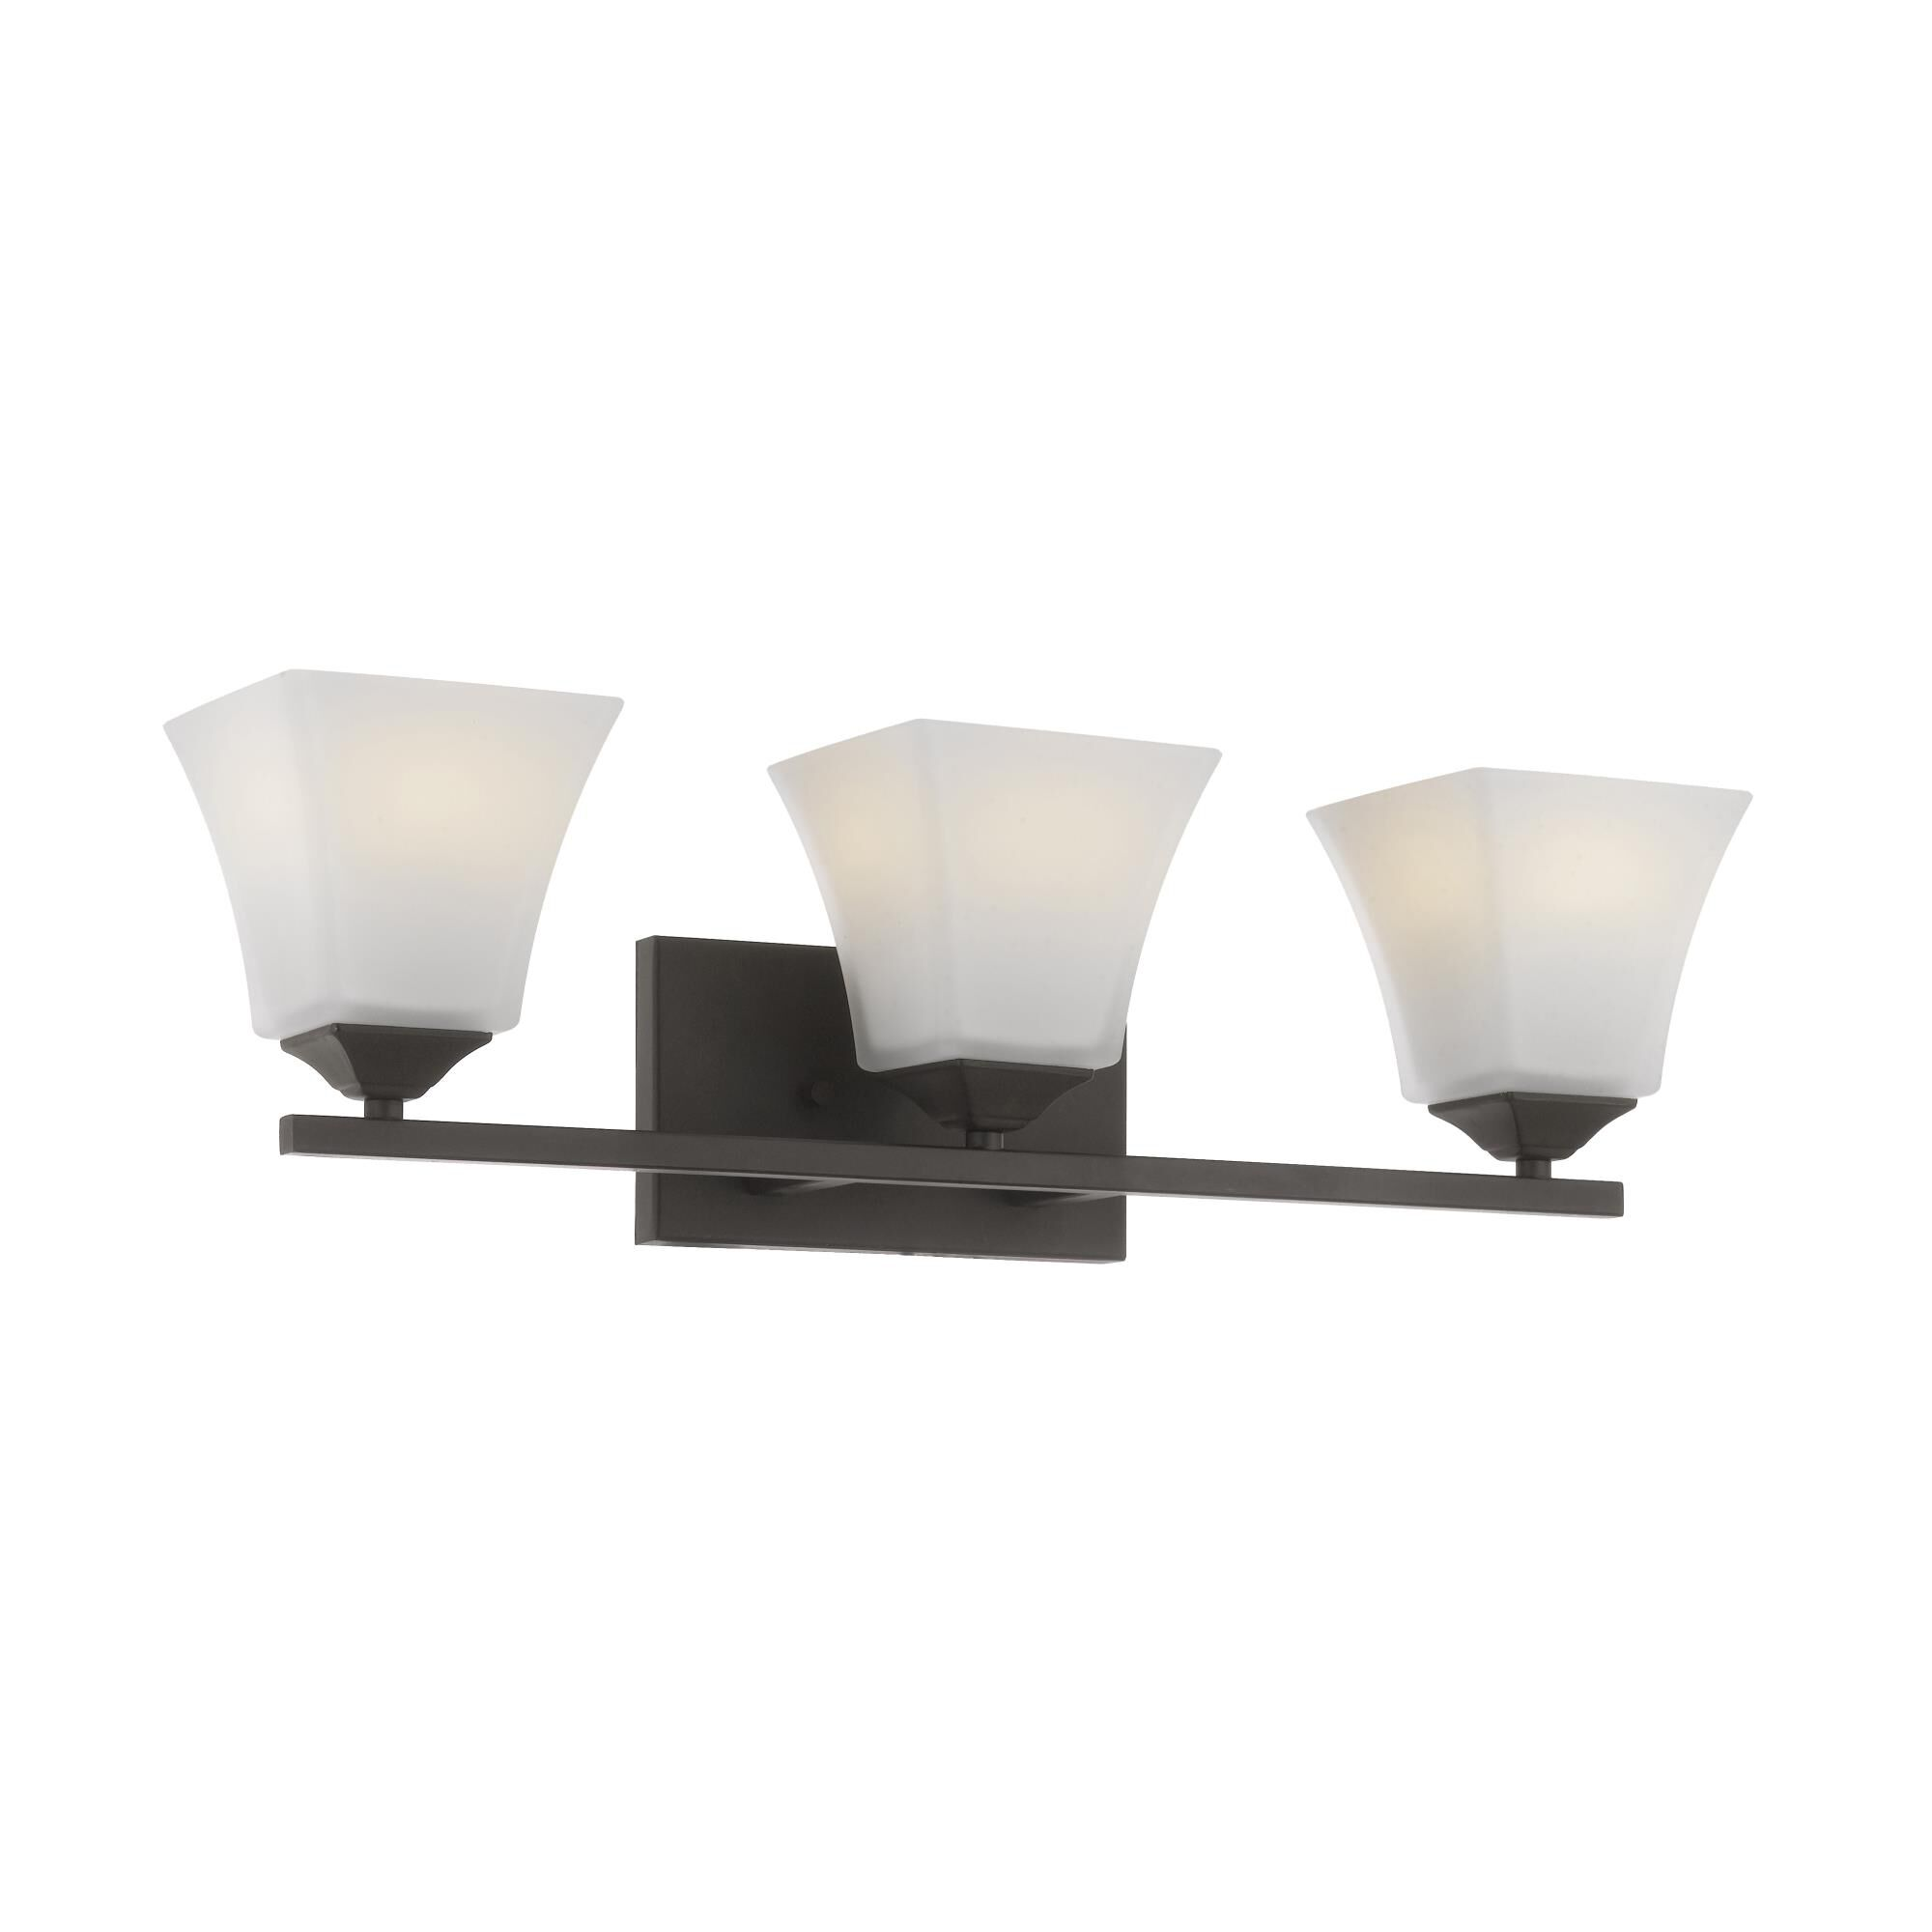 Batalion Hillair 24 Inch Wall Sconce Hillair - P1580wb3orb - Transitional Wall Sconce